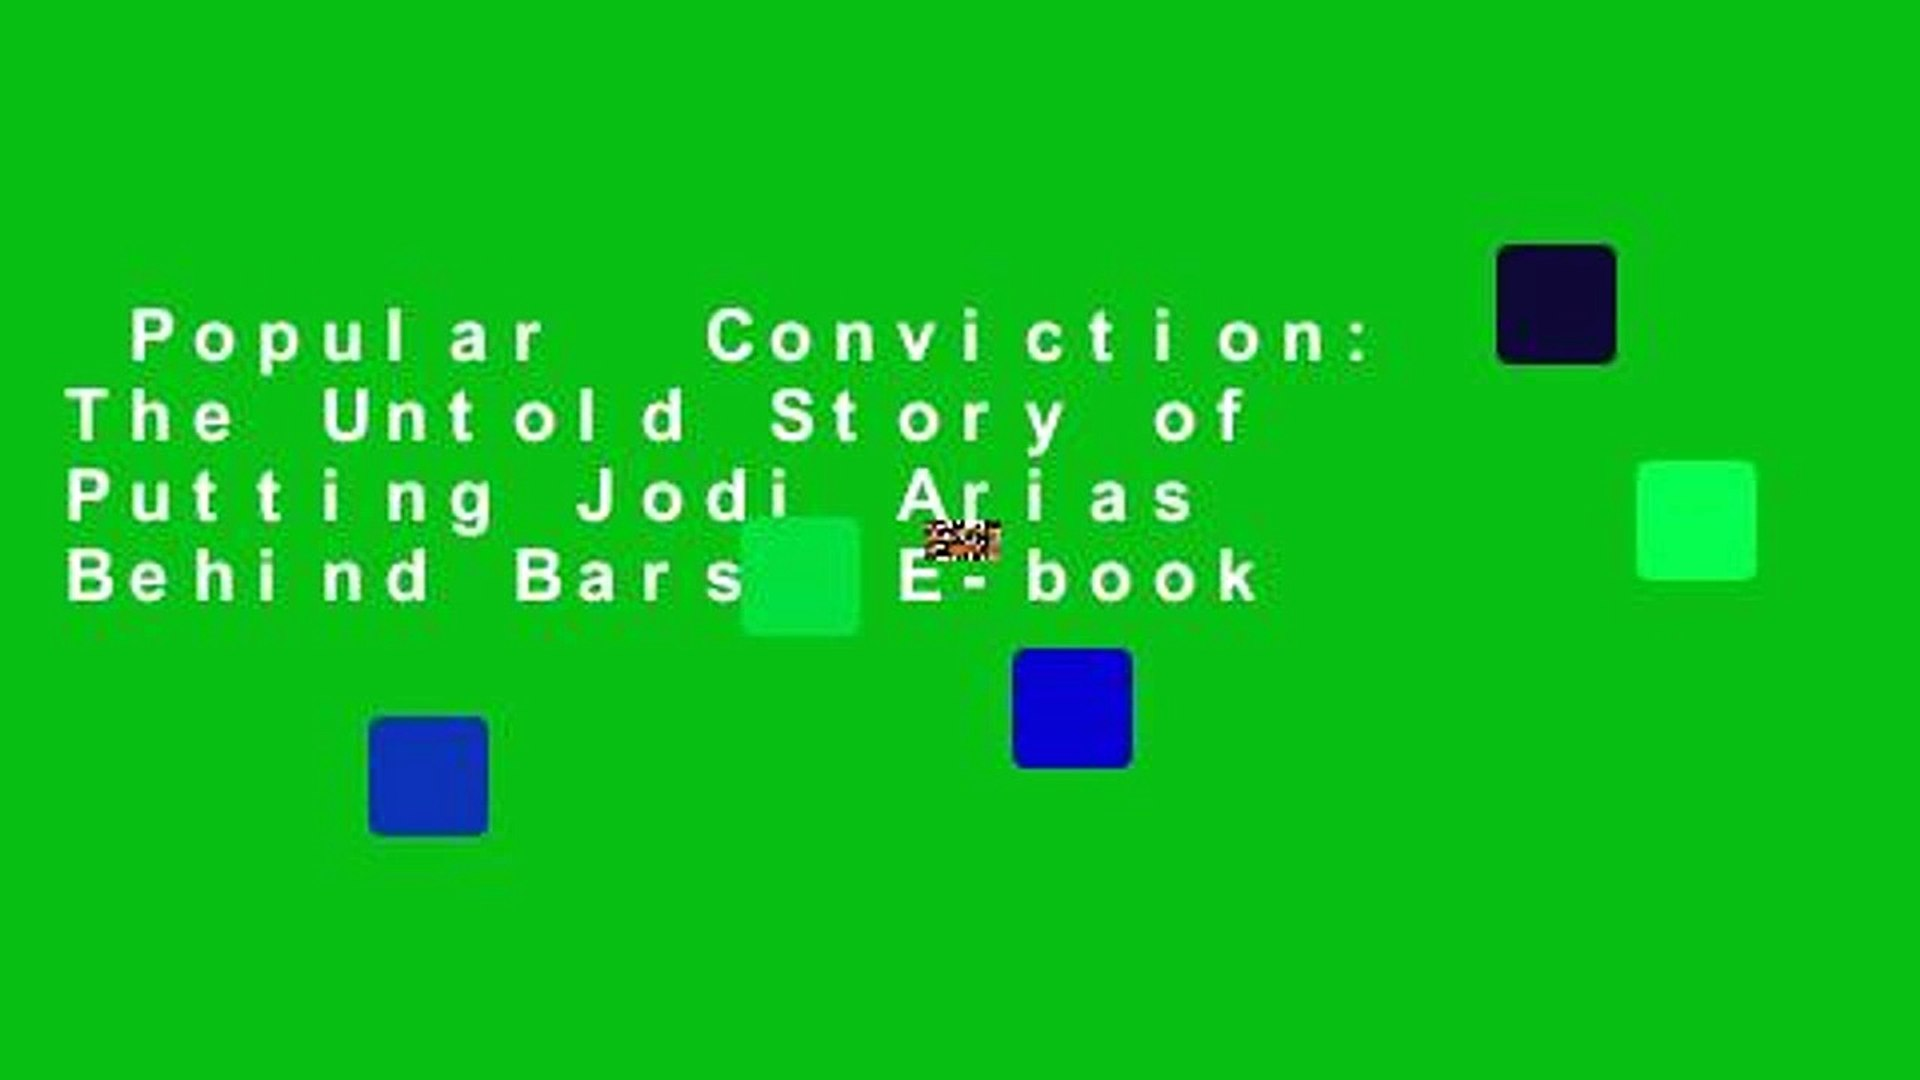 Popular  Conviction: The Untold Story of Putting Jodi Arias Behind Bars  E-book